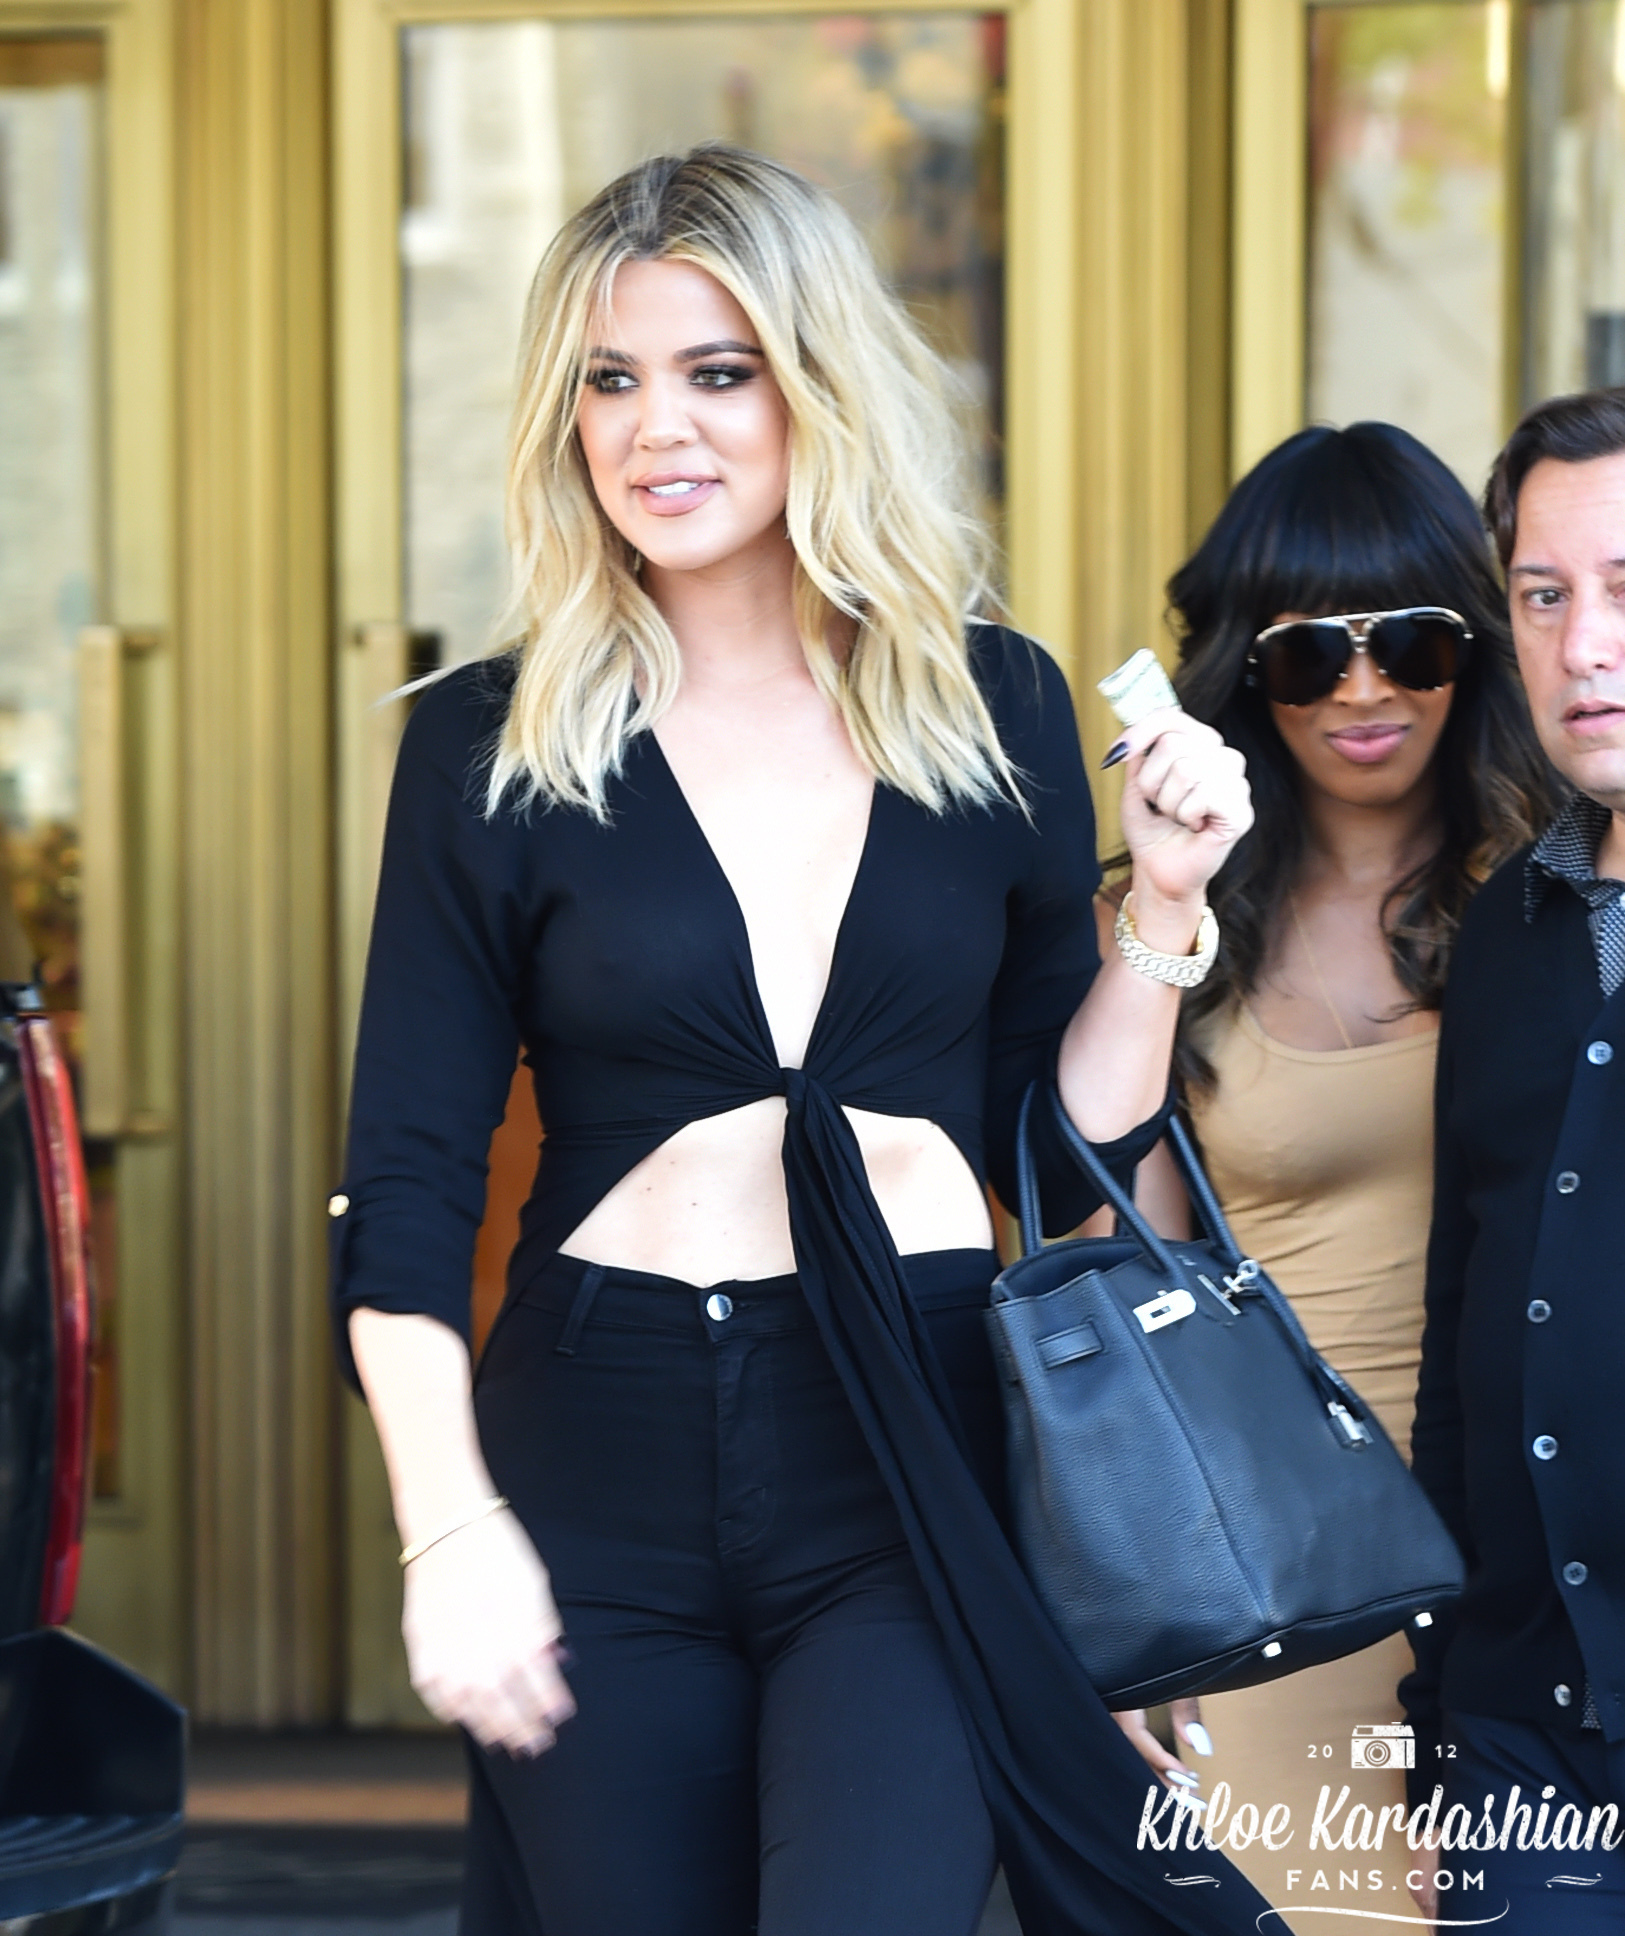 June 13: Khloe shopping at Saks Fifth Avenue in Beverly Hills